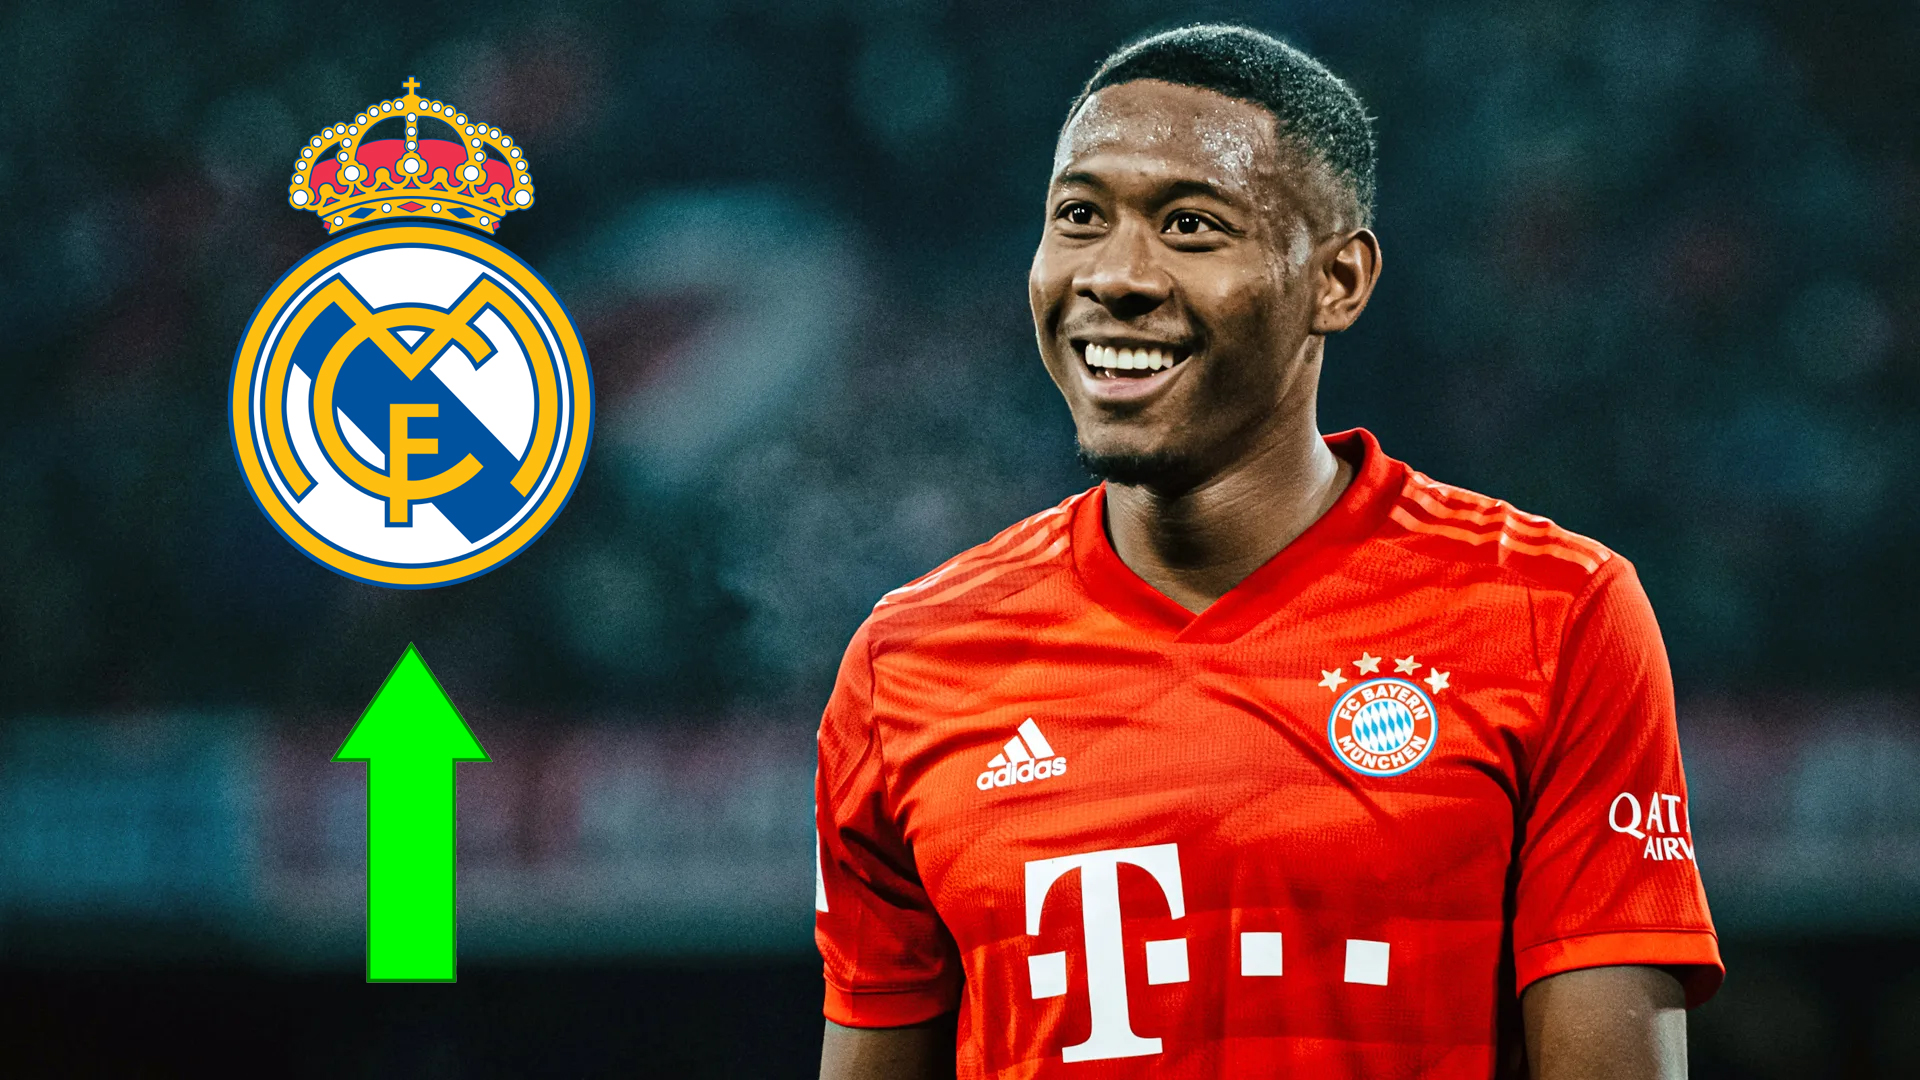 'No decision yet' on Alaba's Madrid move